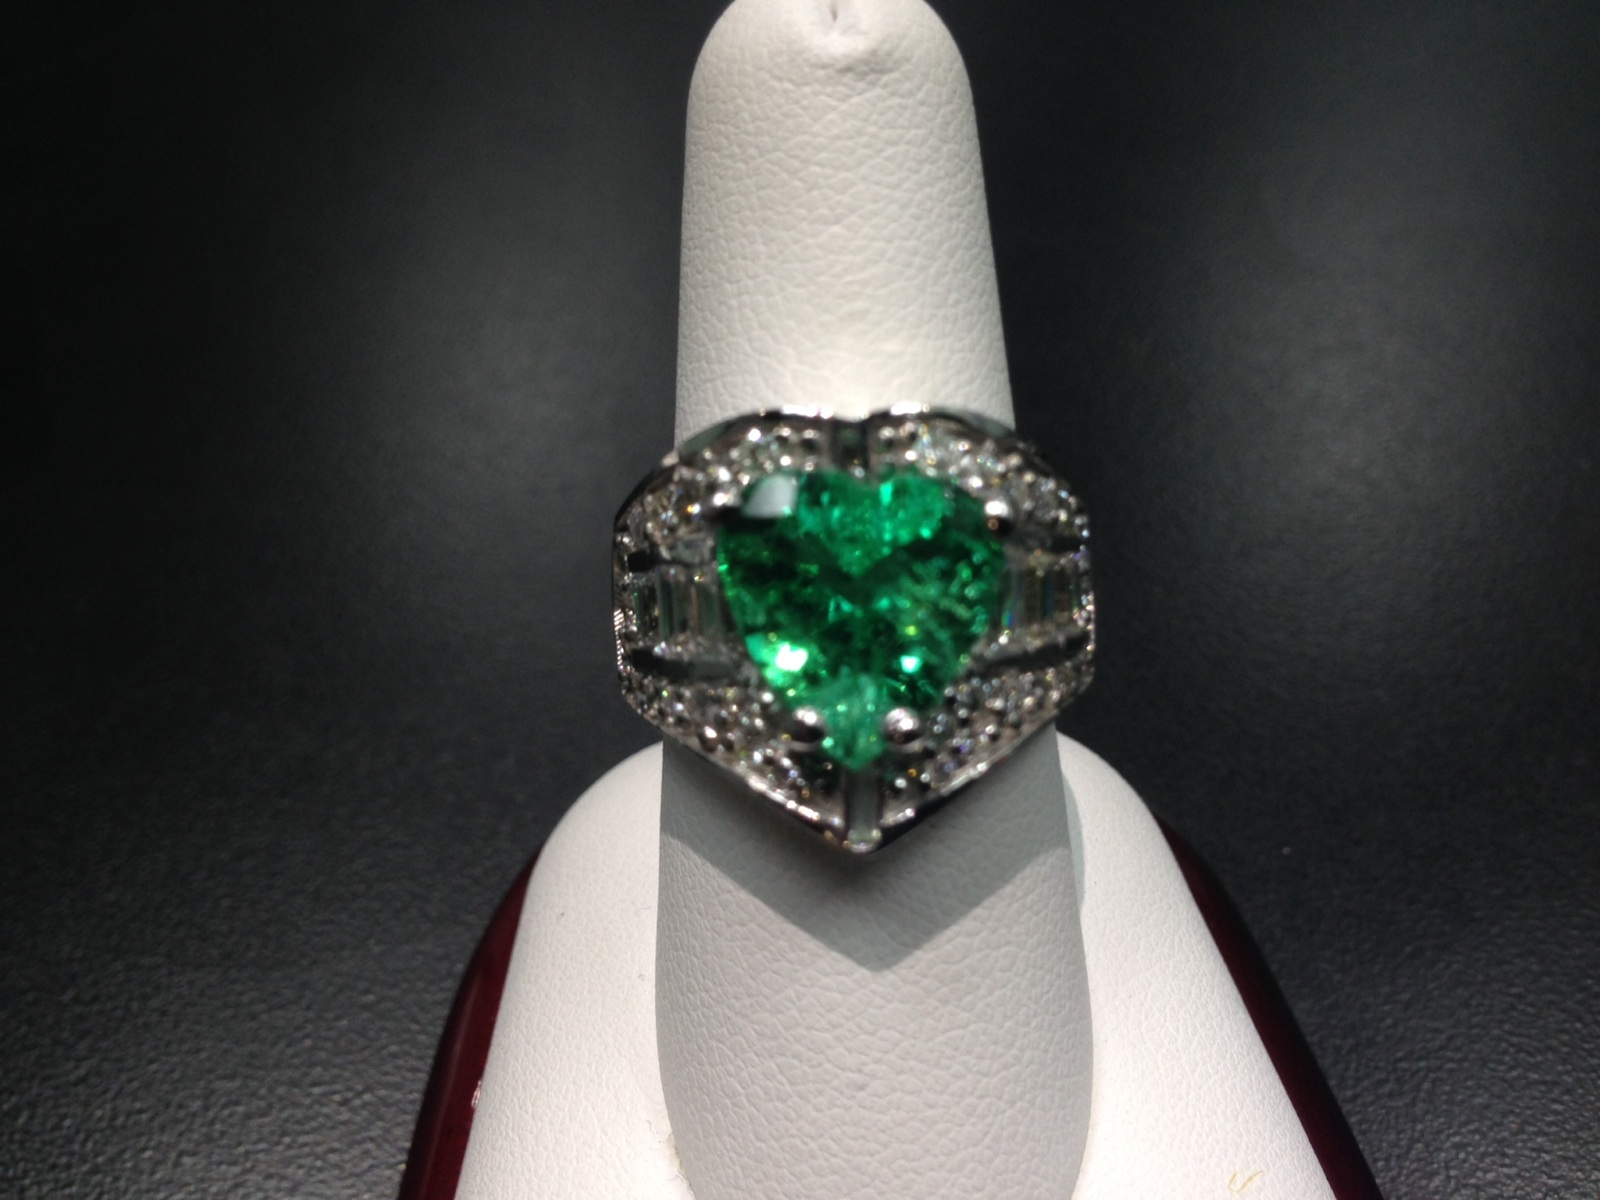 14ktwg Rare Heart-Shaped Emerald/Diamond Ring